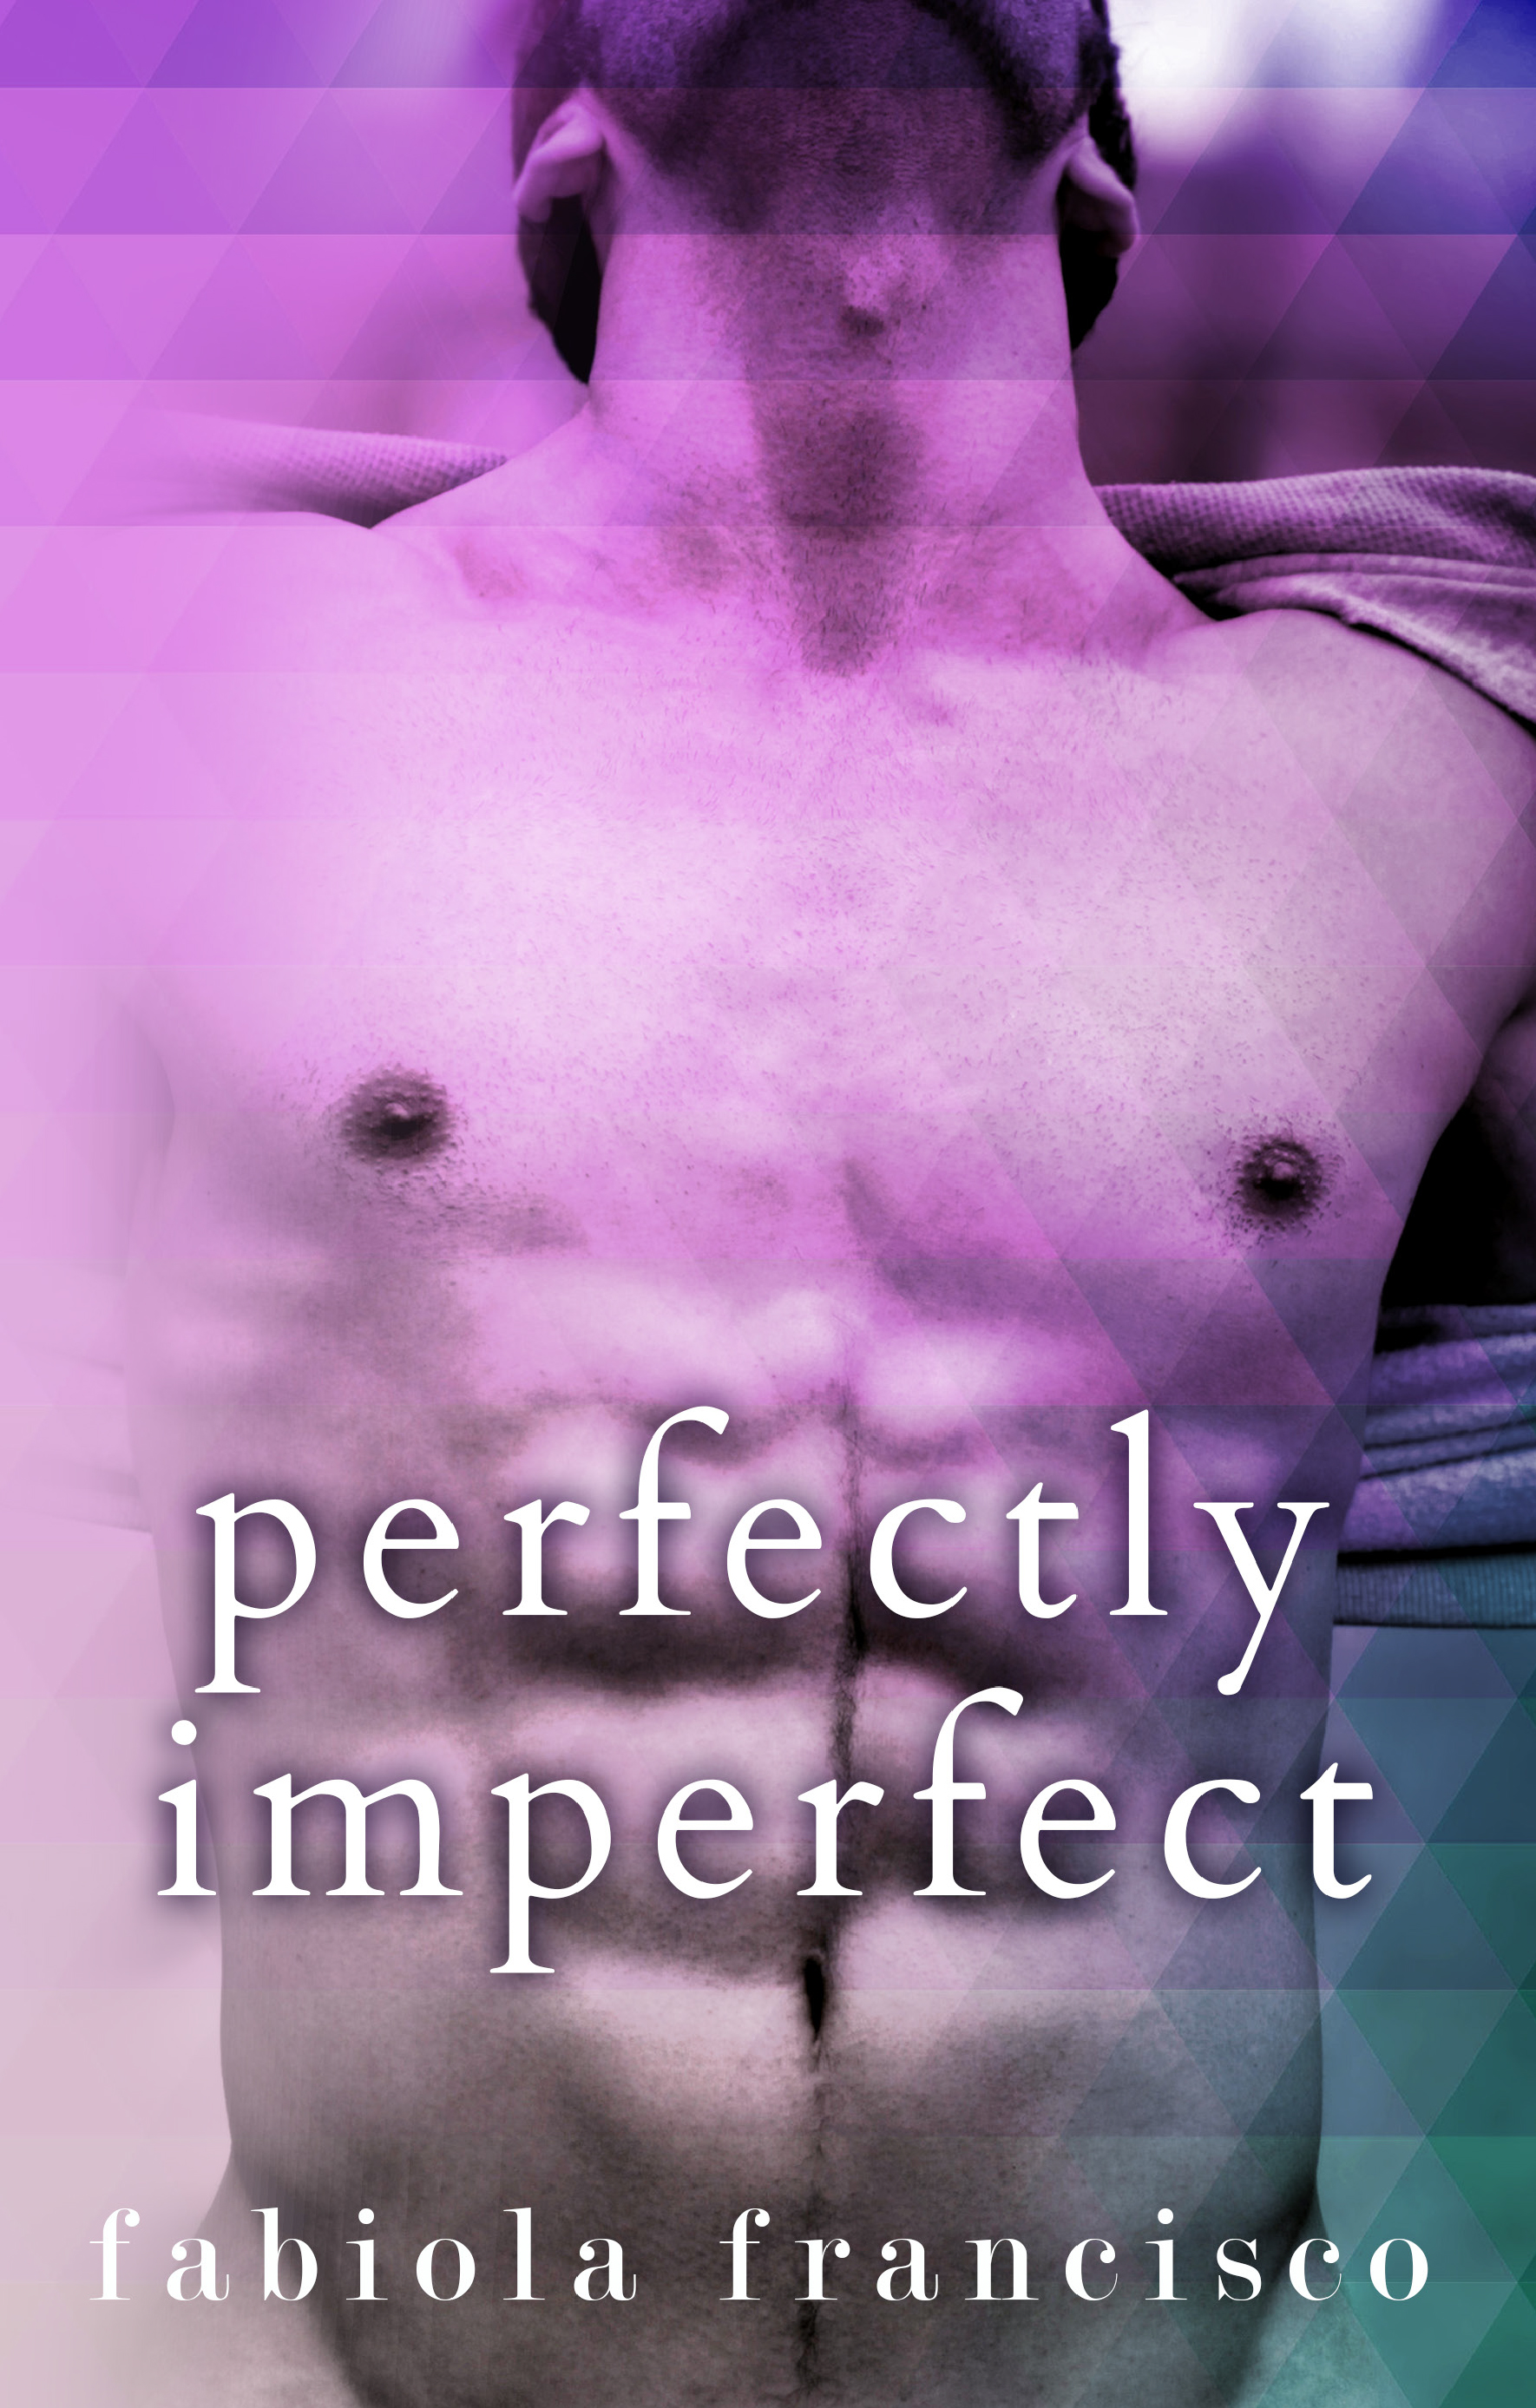 Perfectly Imperfect by Fabiola Francisco is an emotionally charged friends with benefits romance novel.